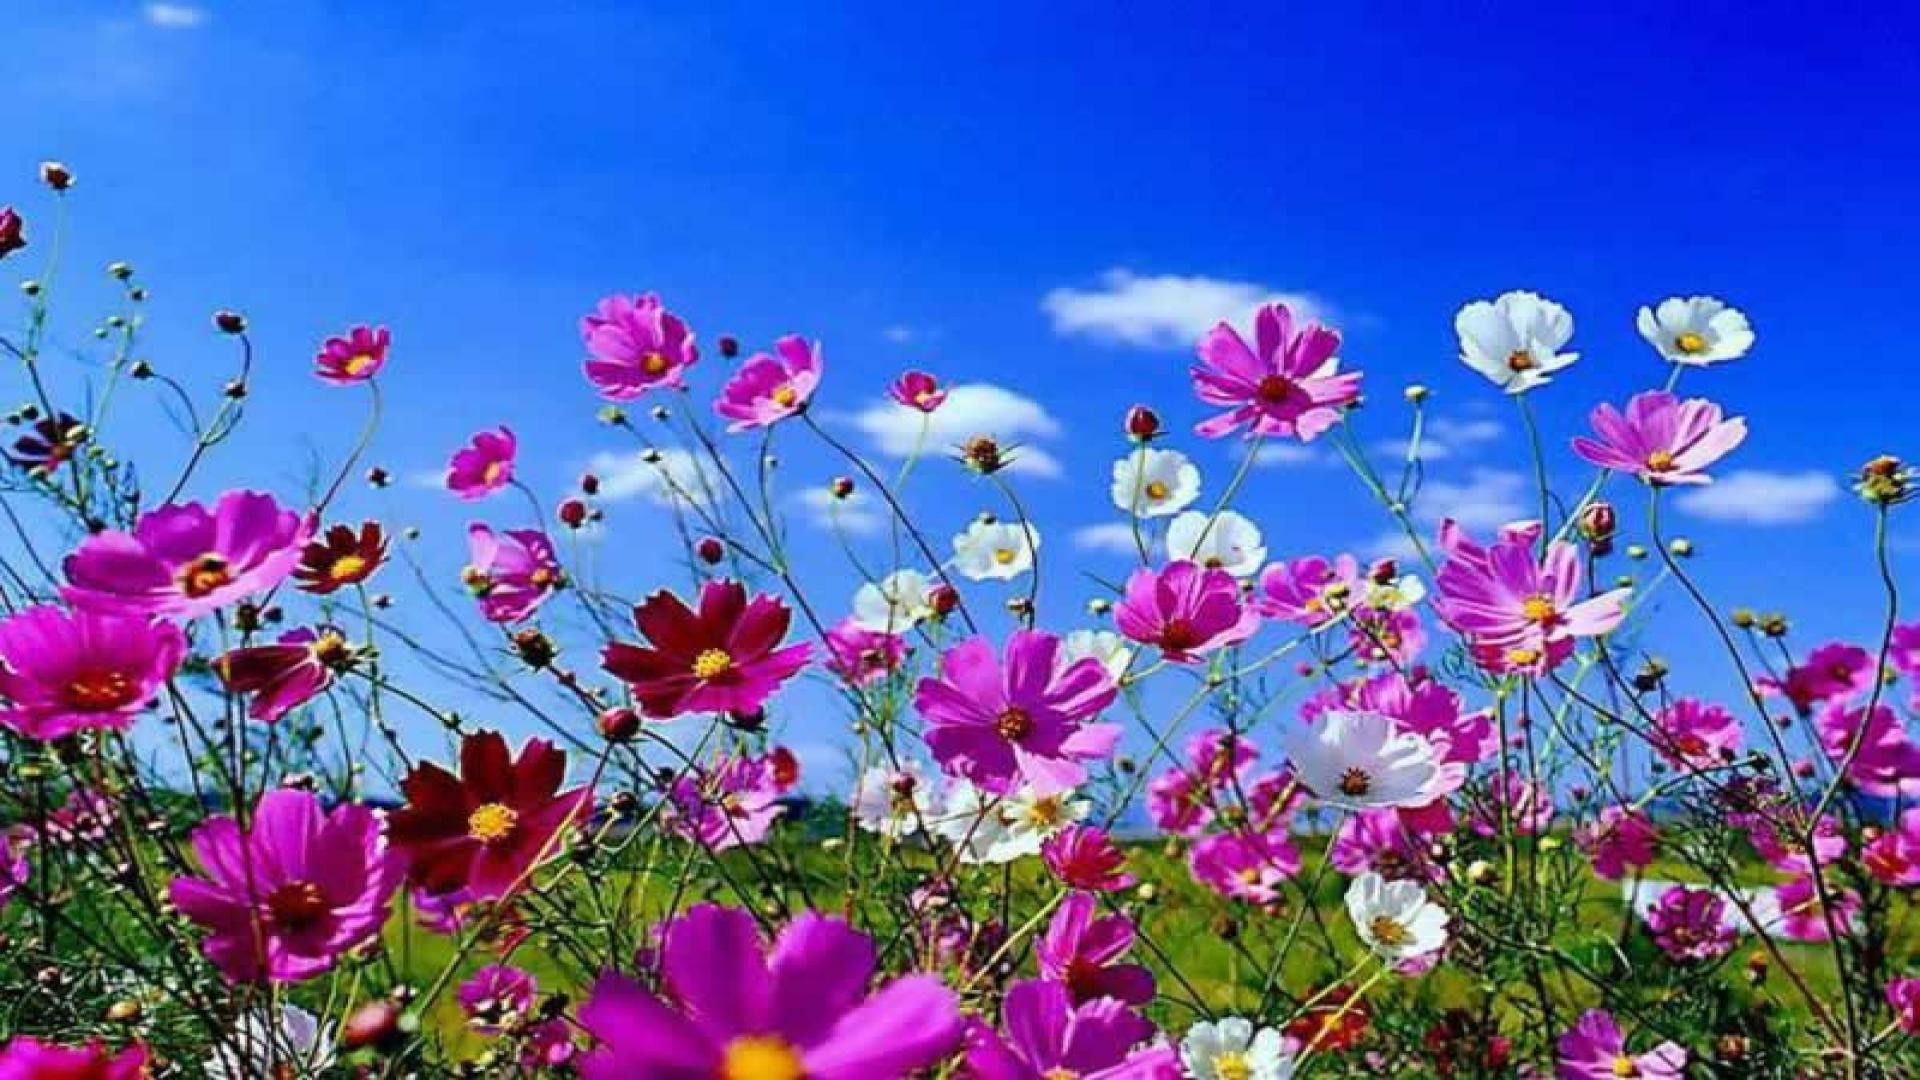 Spring Flowers Background Desktop